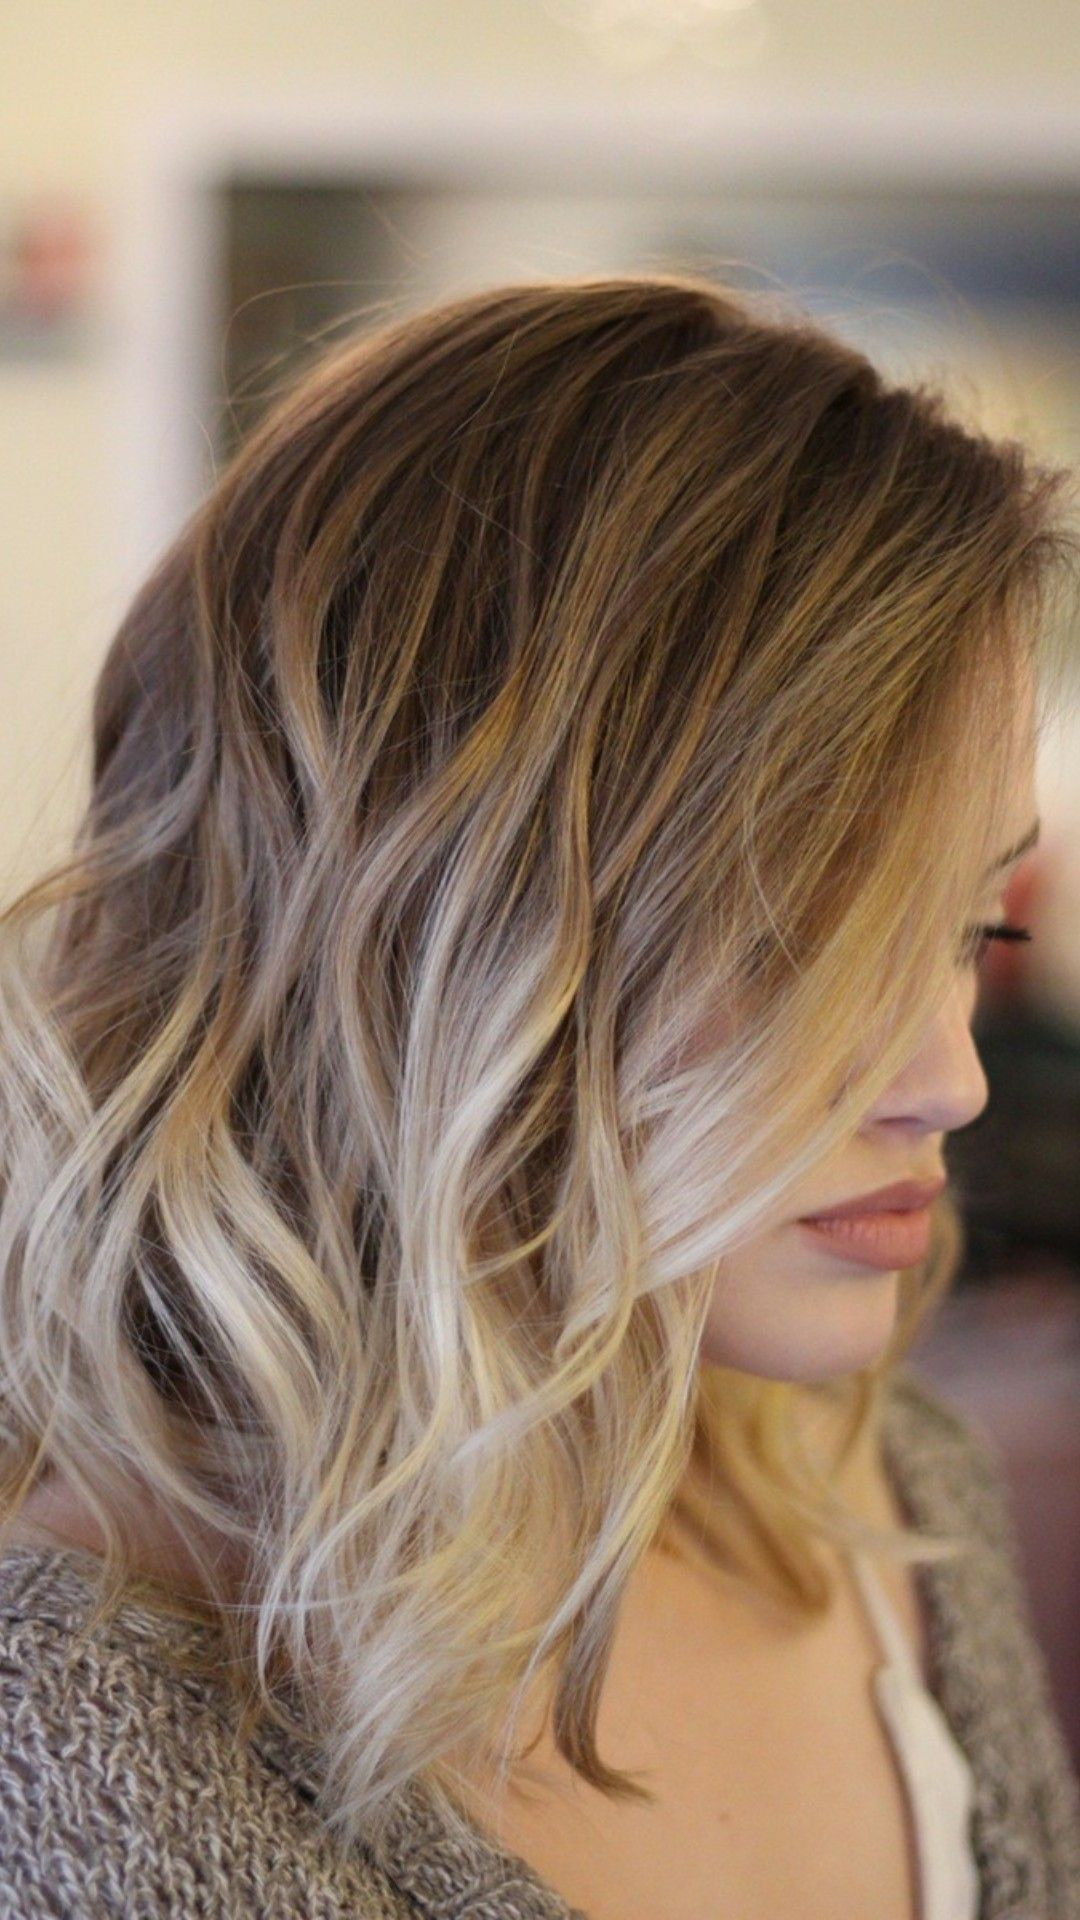 Pin by jaden vincent on hair pinterest hair makeup makeup and balayage hair blonde by rena solutioingenieria Gallery